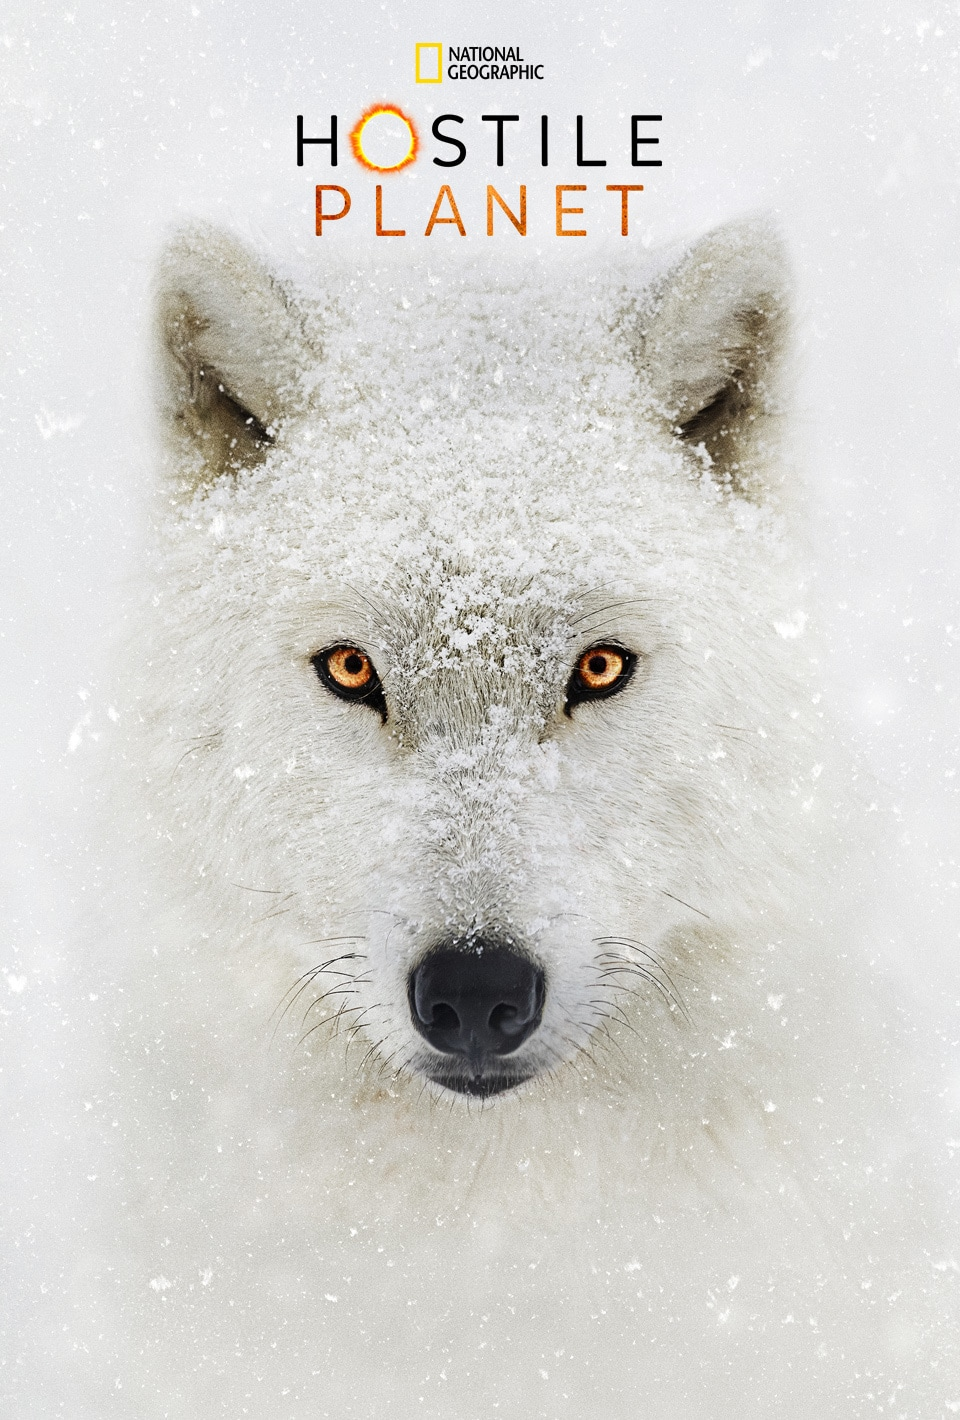 An Arctic Wolf from Hostile Planet with Bear Grylls